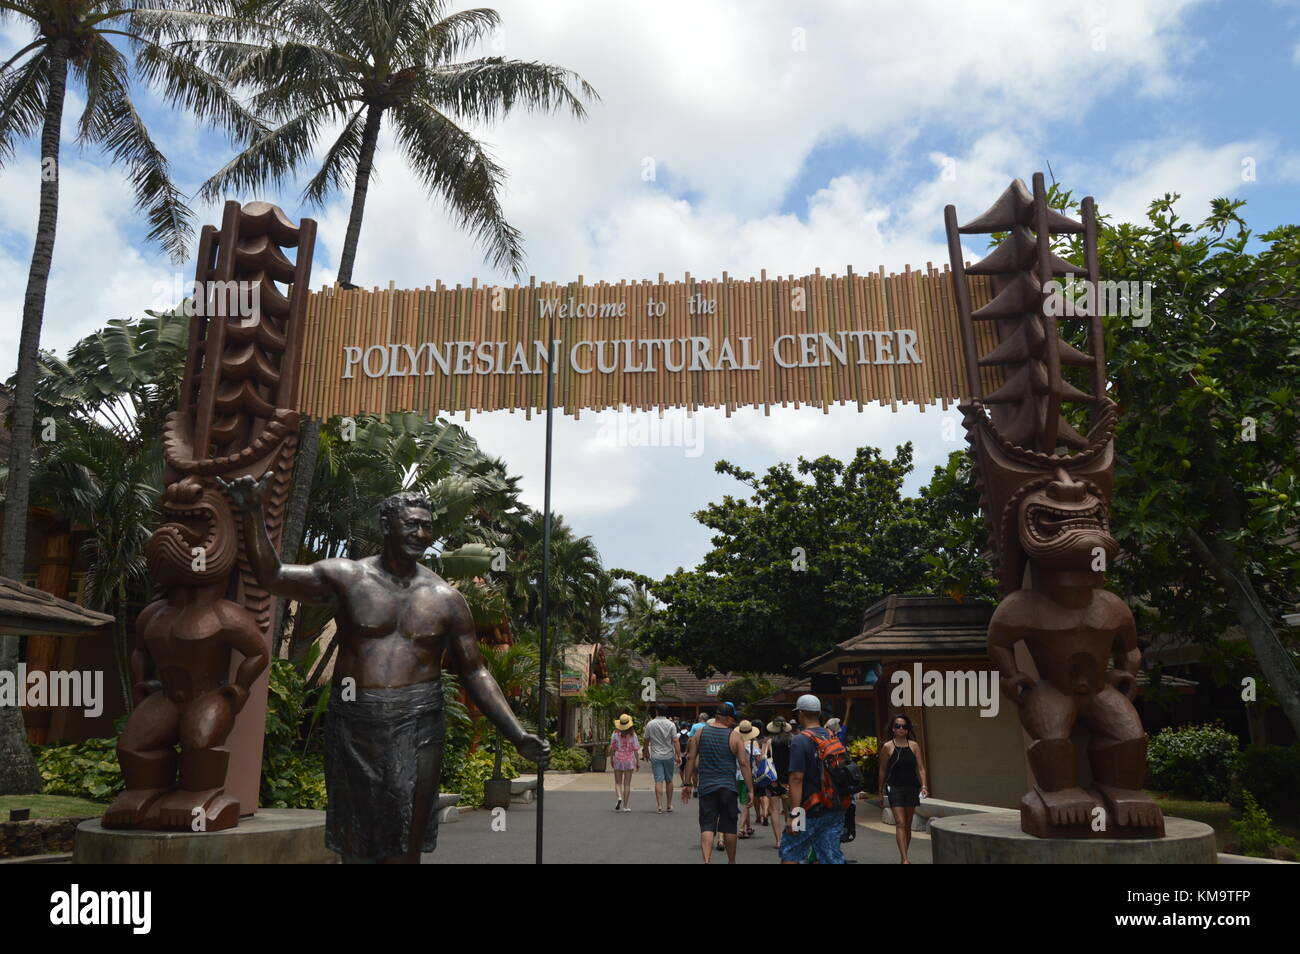 Entrance to the Polynesian Cultural Center. Oahu, Hawaii, USA, EEUU. - Stock Image